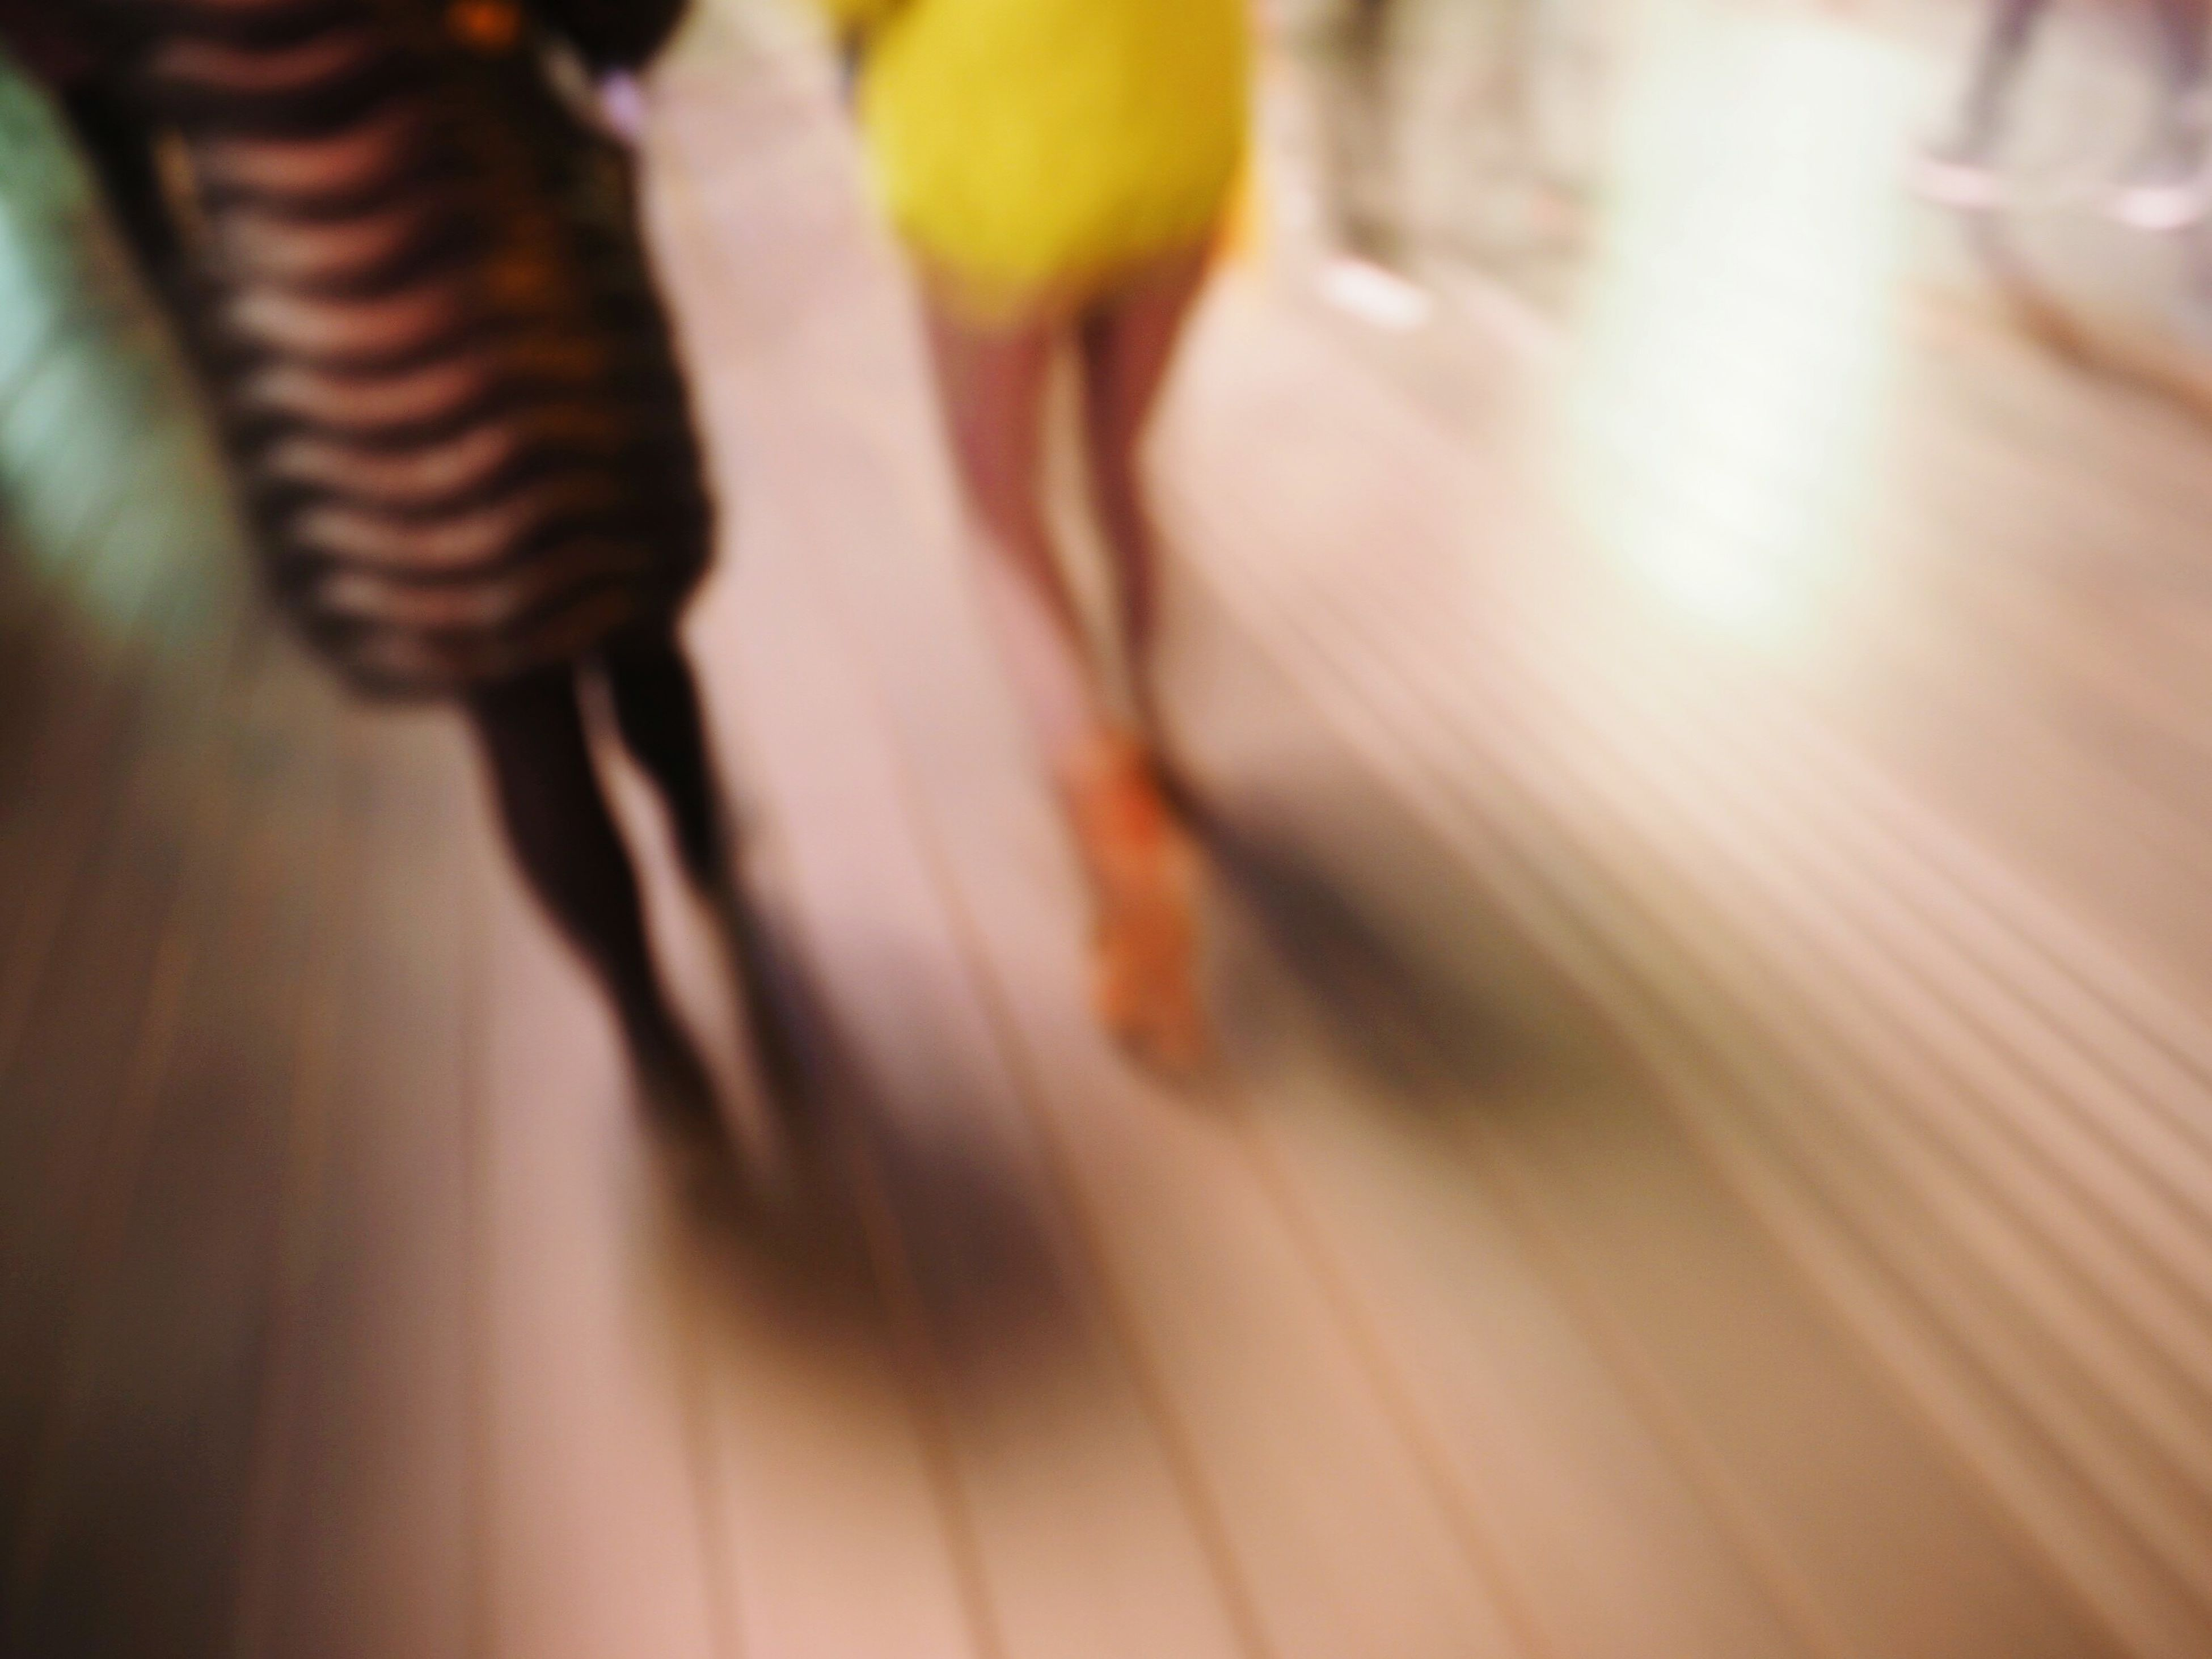 indoors, selective focus, blurred motion, transportation, motion, close-up, focus on foreground, part of, road, street, high angle view, speed, mode of transport, on the move, travel, defocused, unrecognizable person, reflection